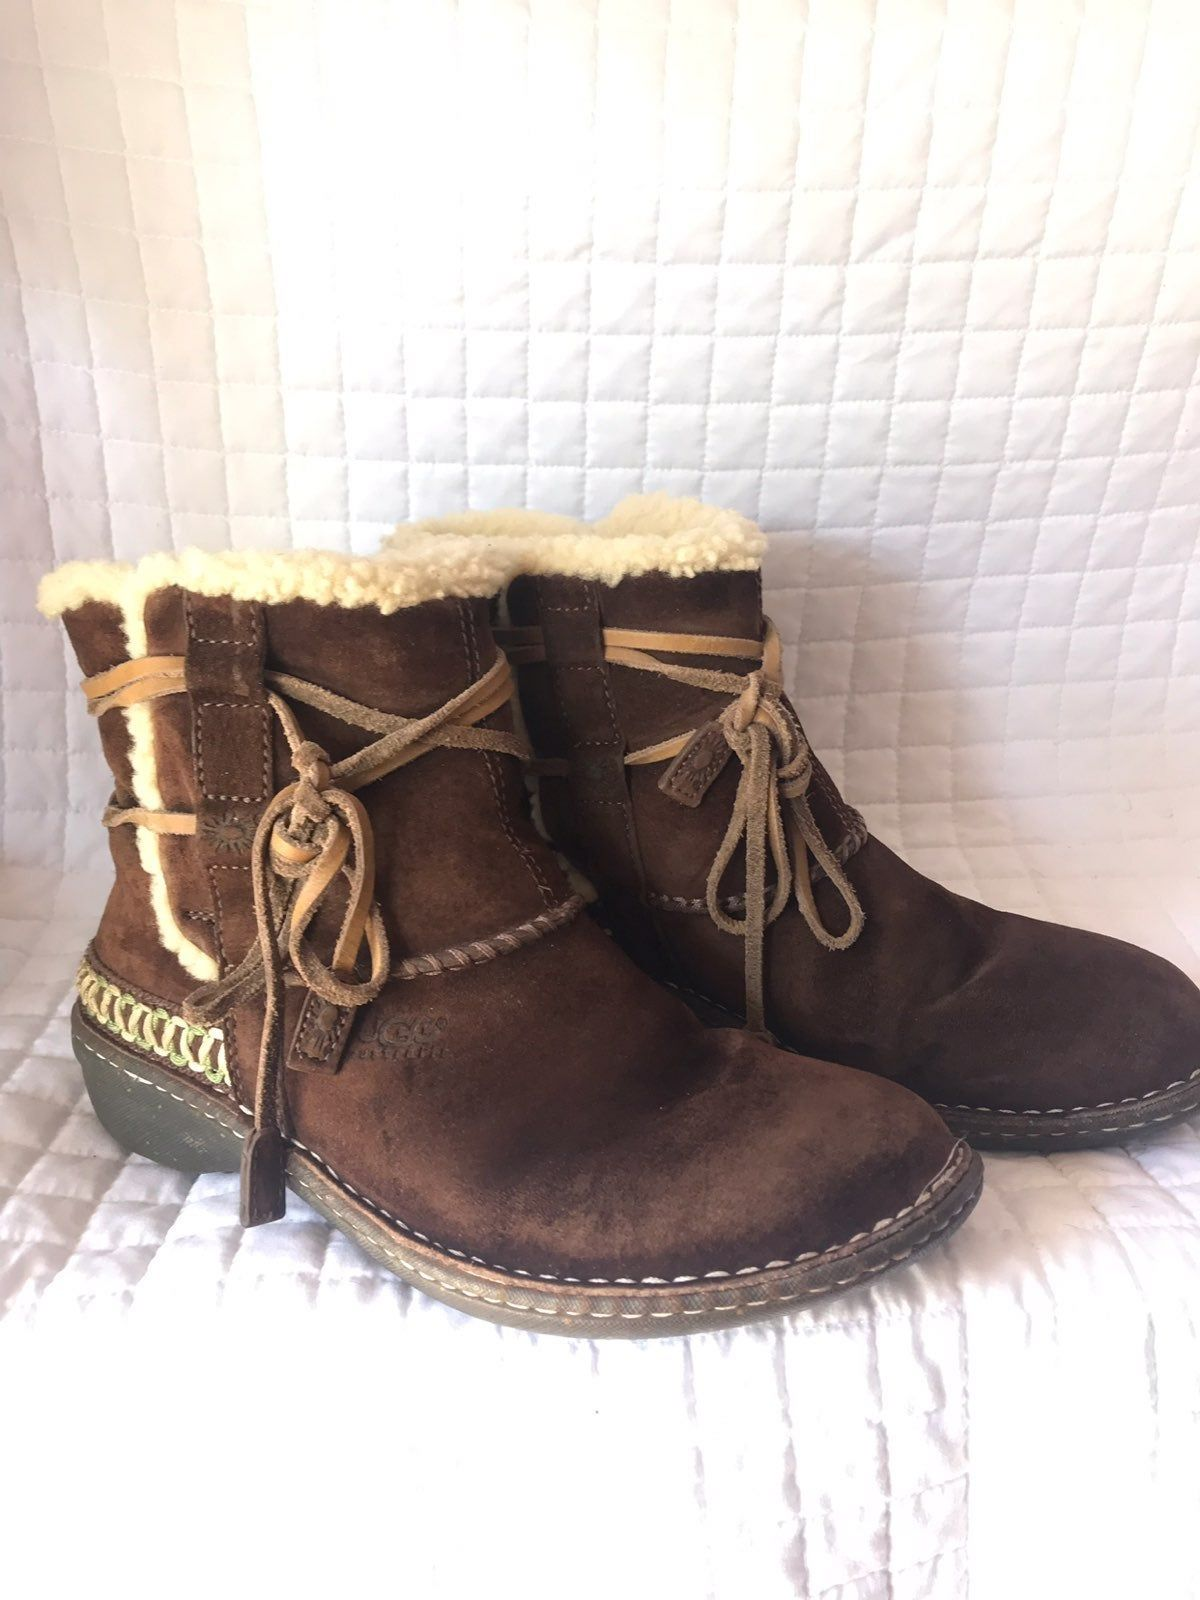 Brown leather ugg boots. Ties in front